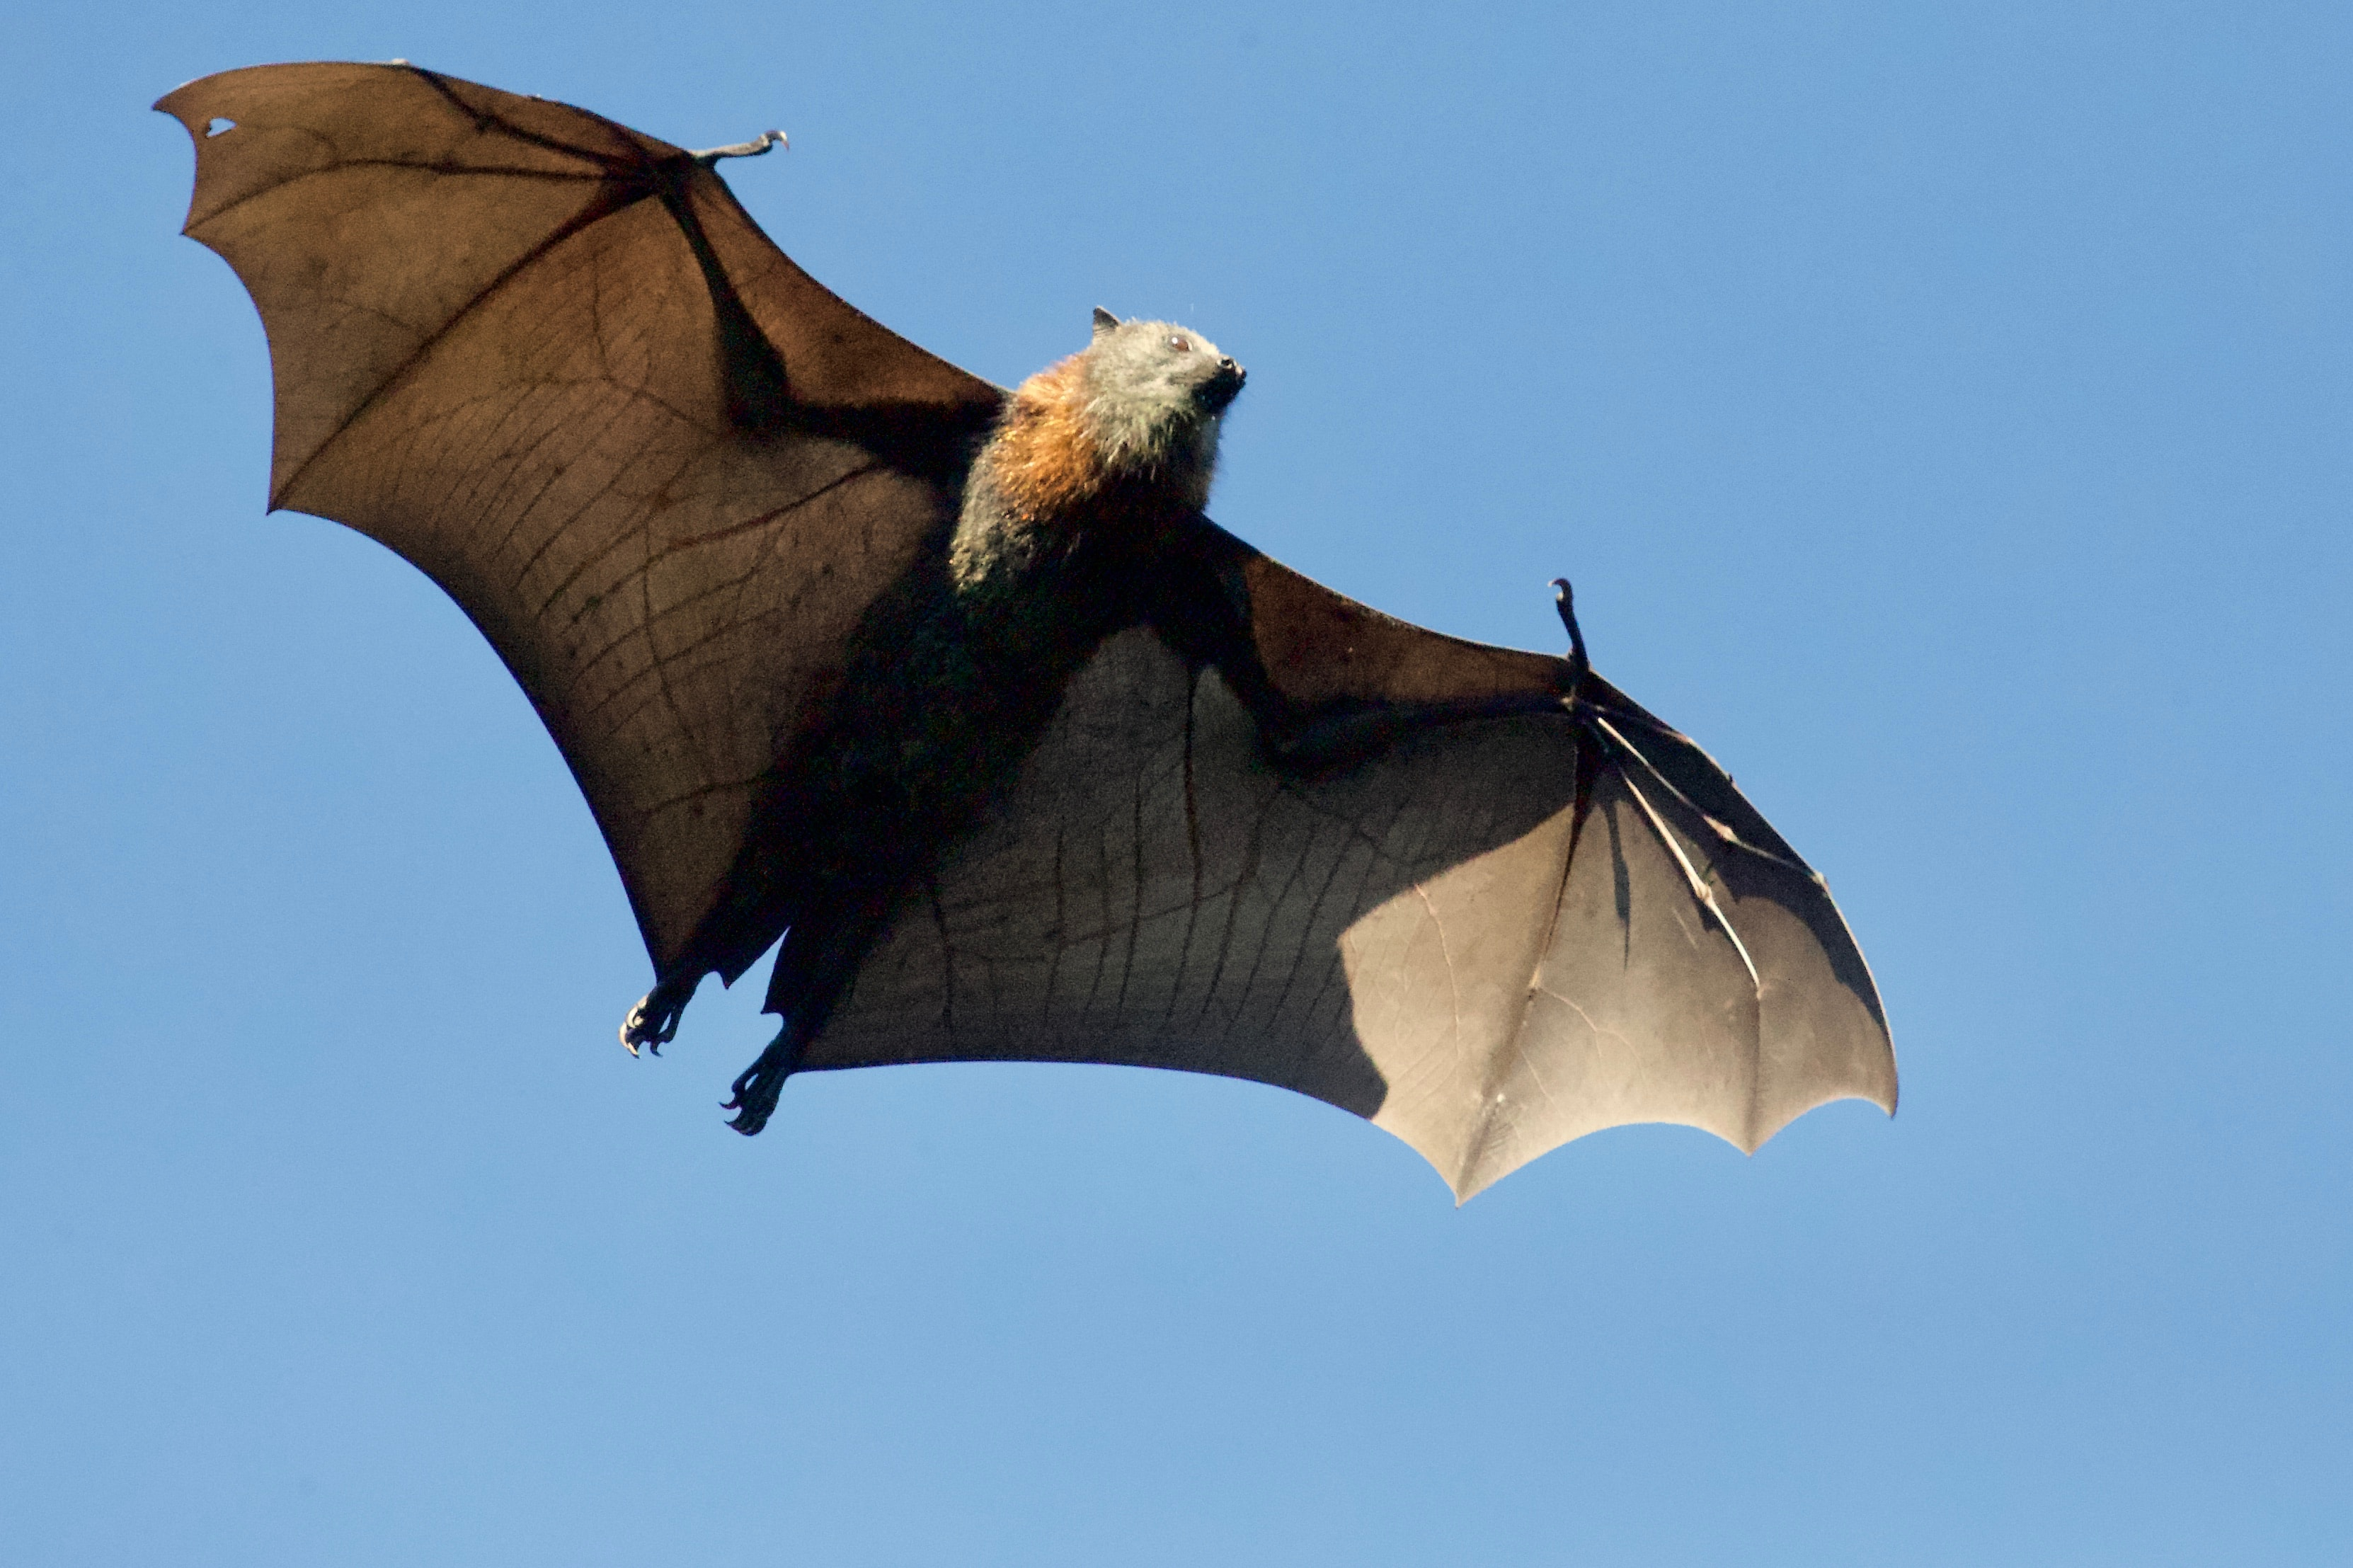 Researchers To Study Thai Bat Species Ability To Carry